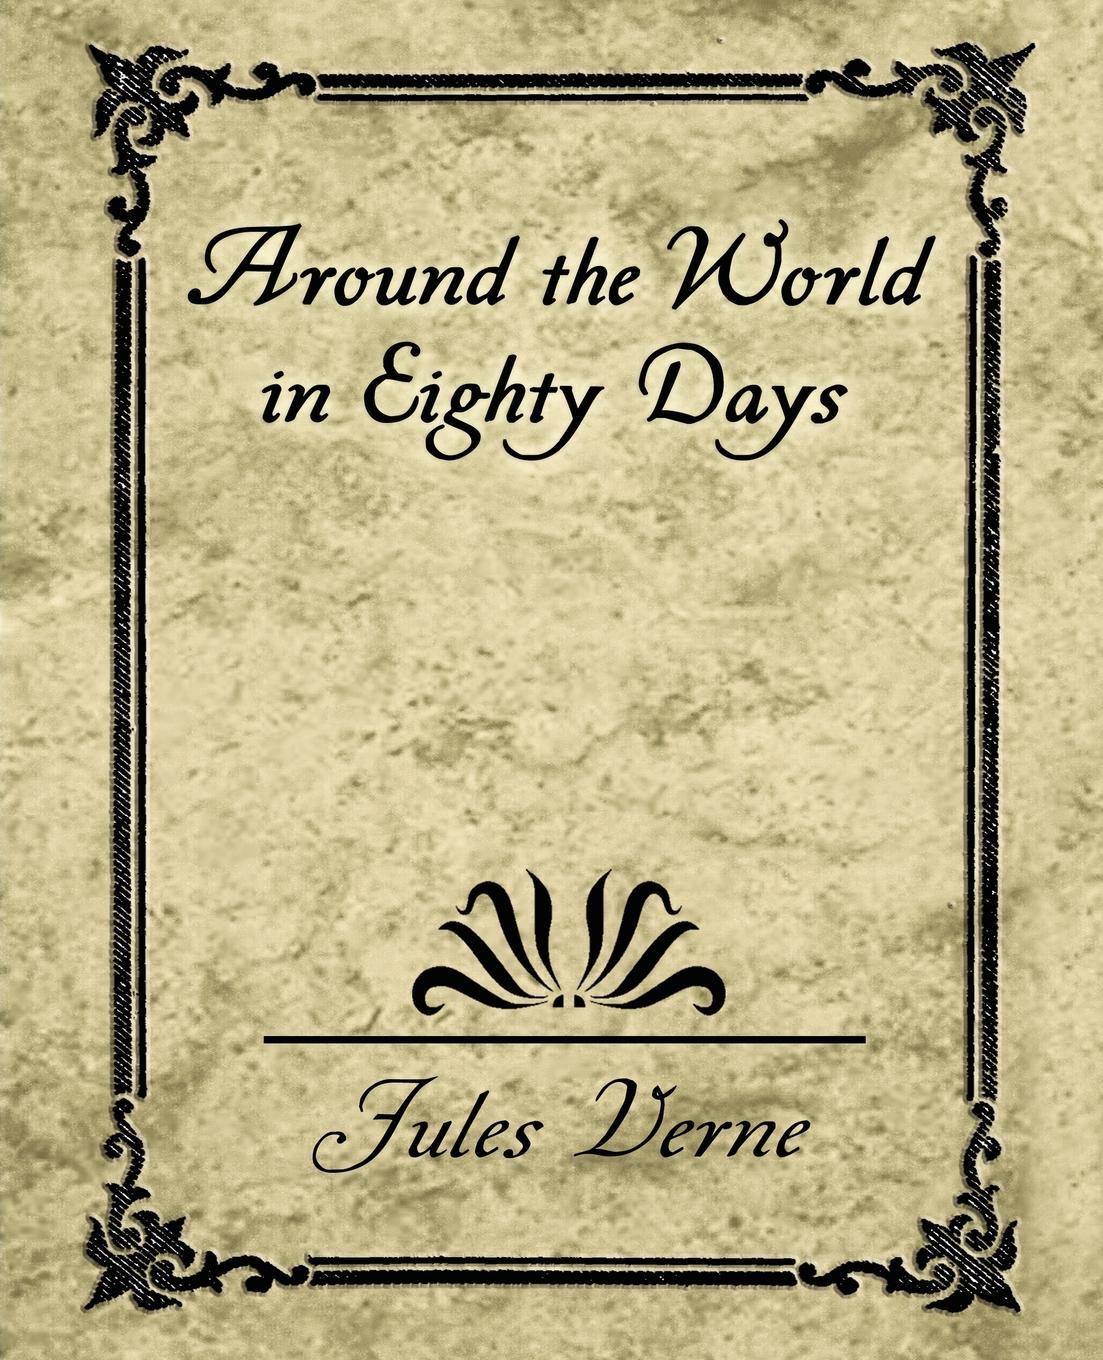 Verne Jules Verne, Jules Verne, Jules Verne Around the World in Eighty Days кровать etagerca jules verne jv16etgb